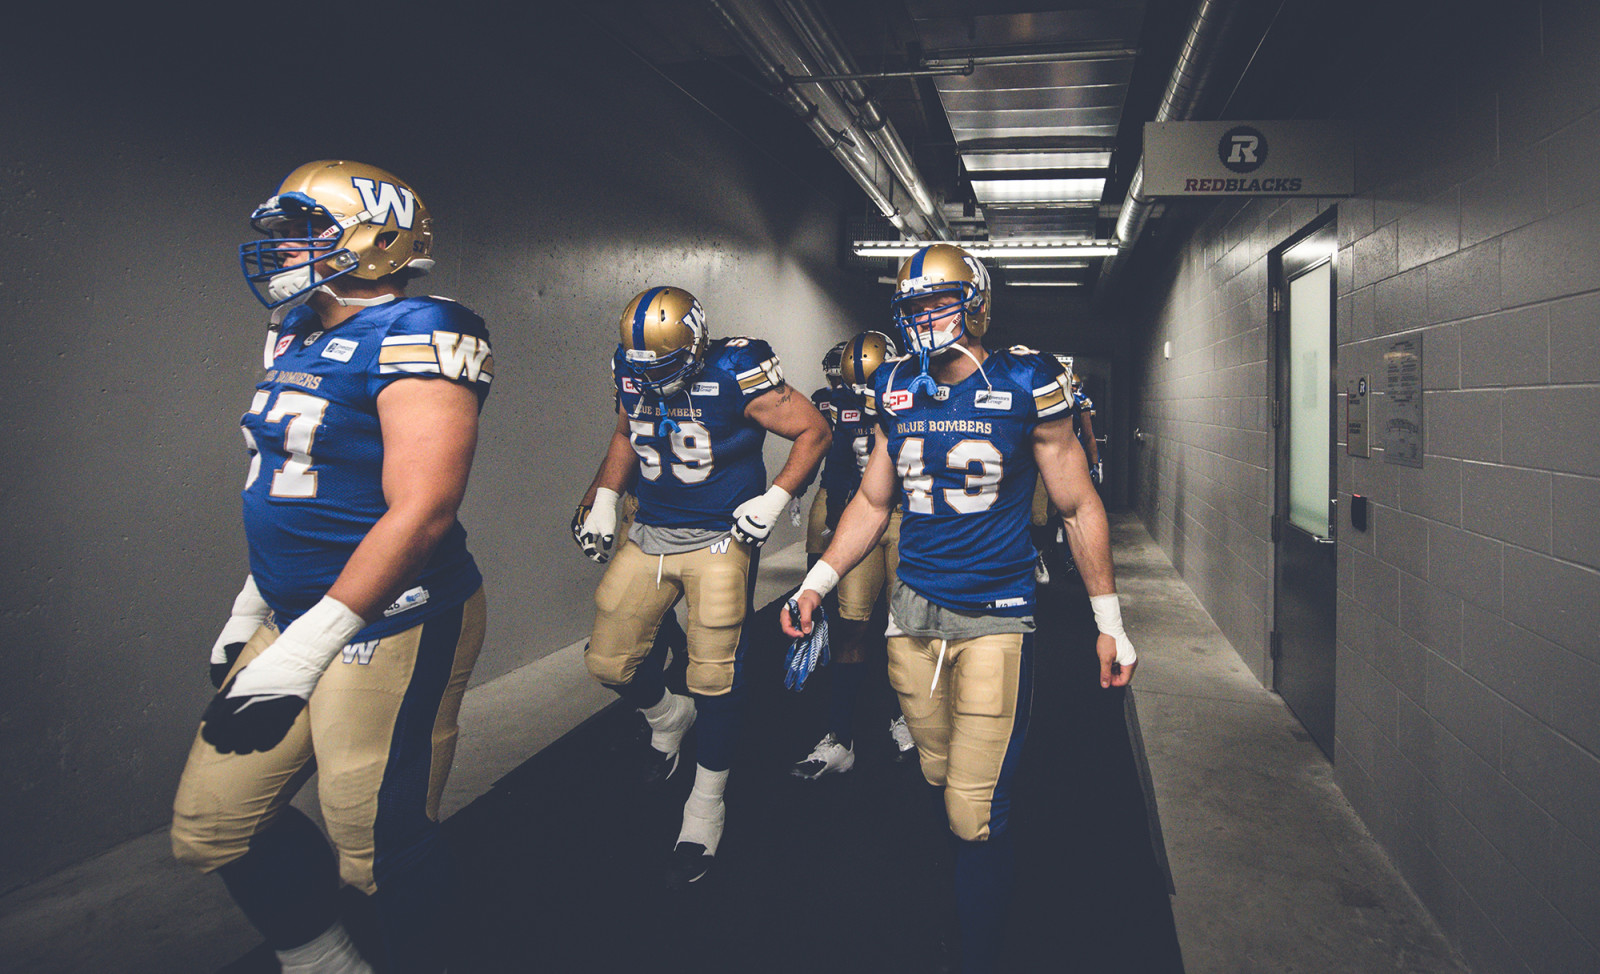 Trent Corney (43) and Jace Daniels (59) of the Winnipeg Blue Bombers during the pre-season game at TD Place in Ottawa, ON on Monday June 13, 2016. (Photo: Johany Jutras)